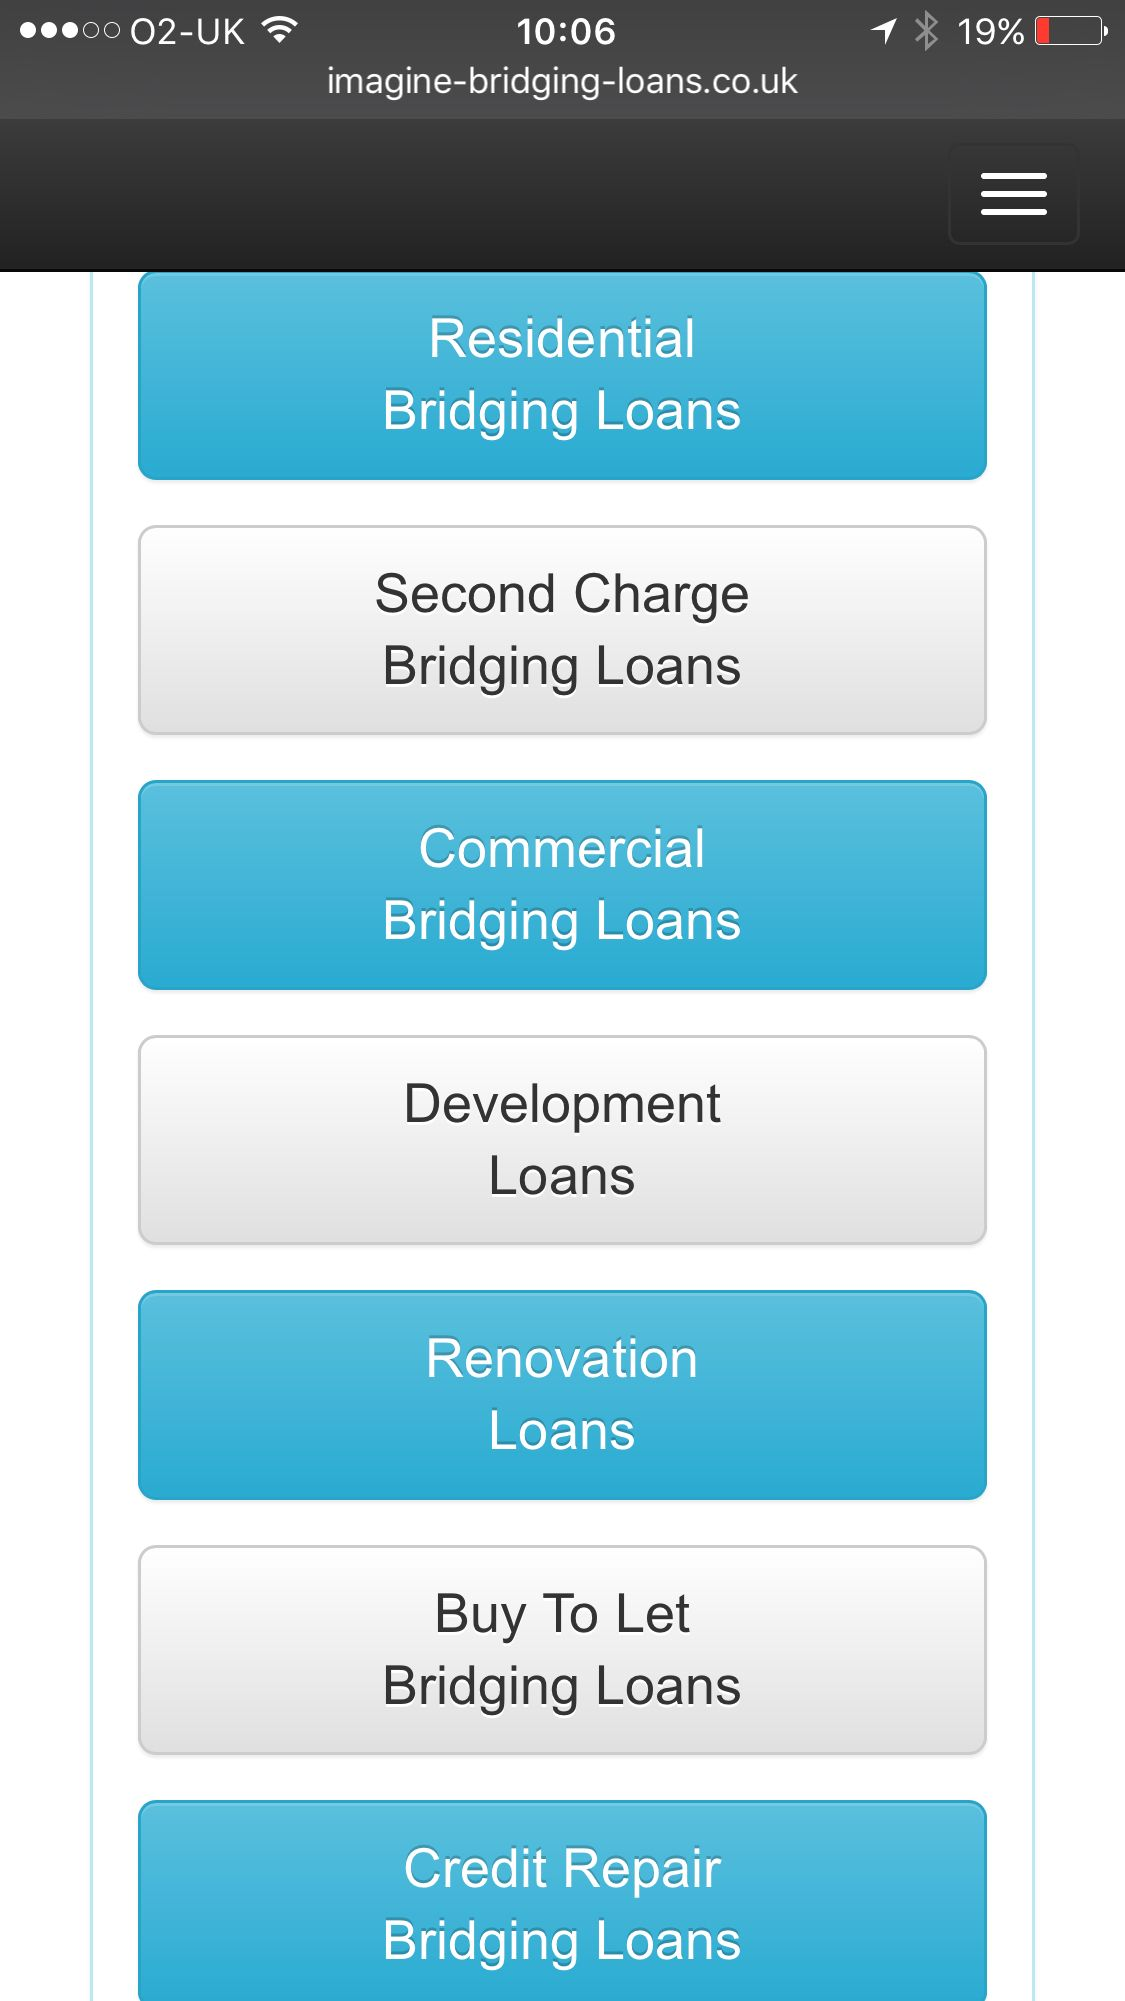 Types of bridging loans. WE RECOMMEND THAT YOU SEEK